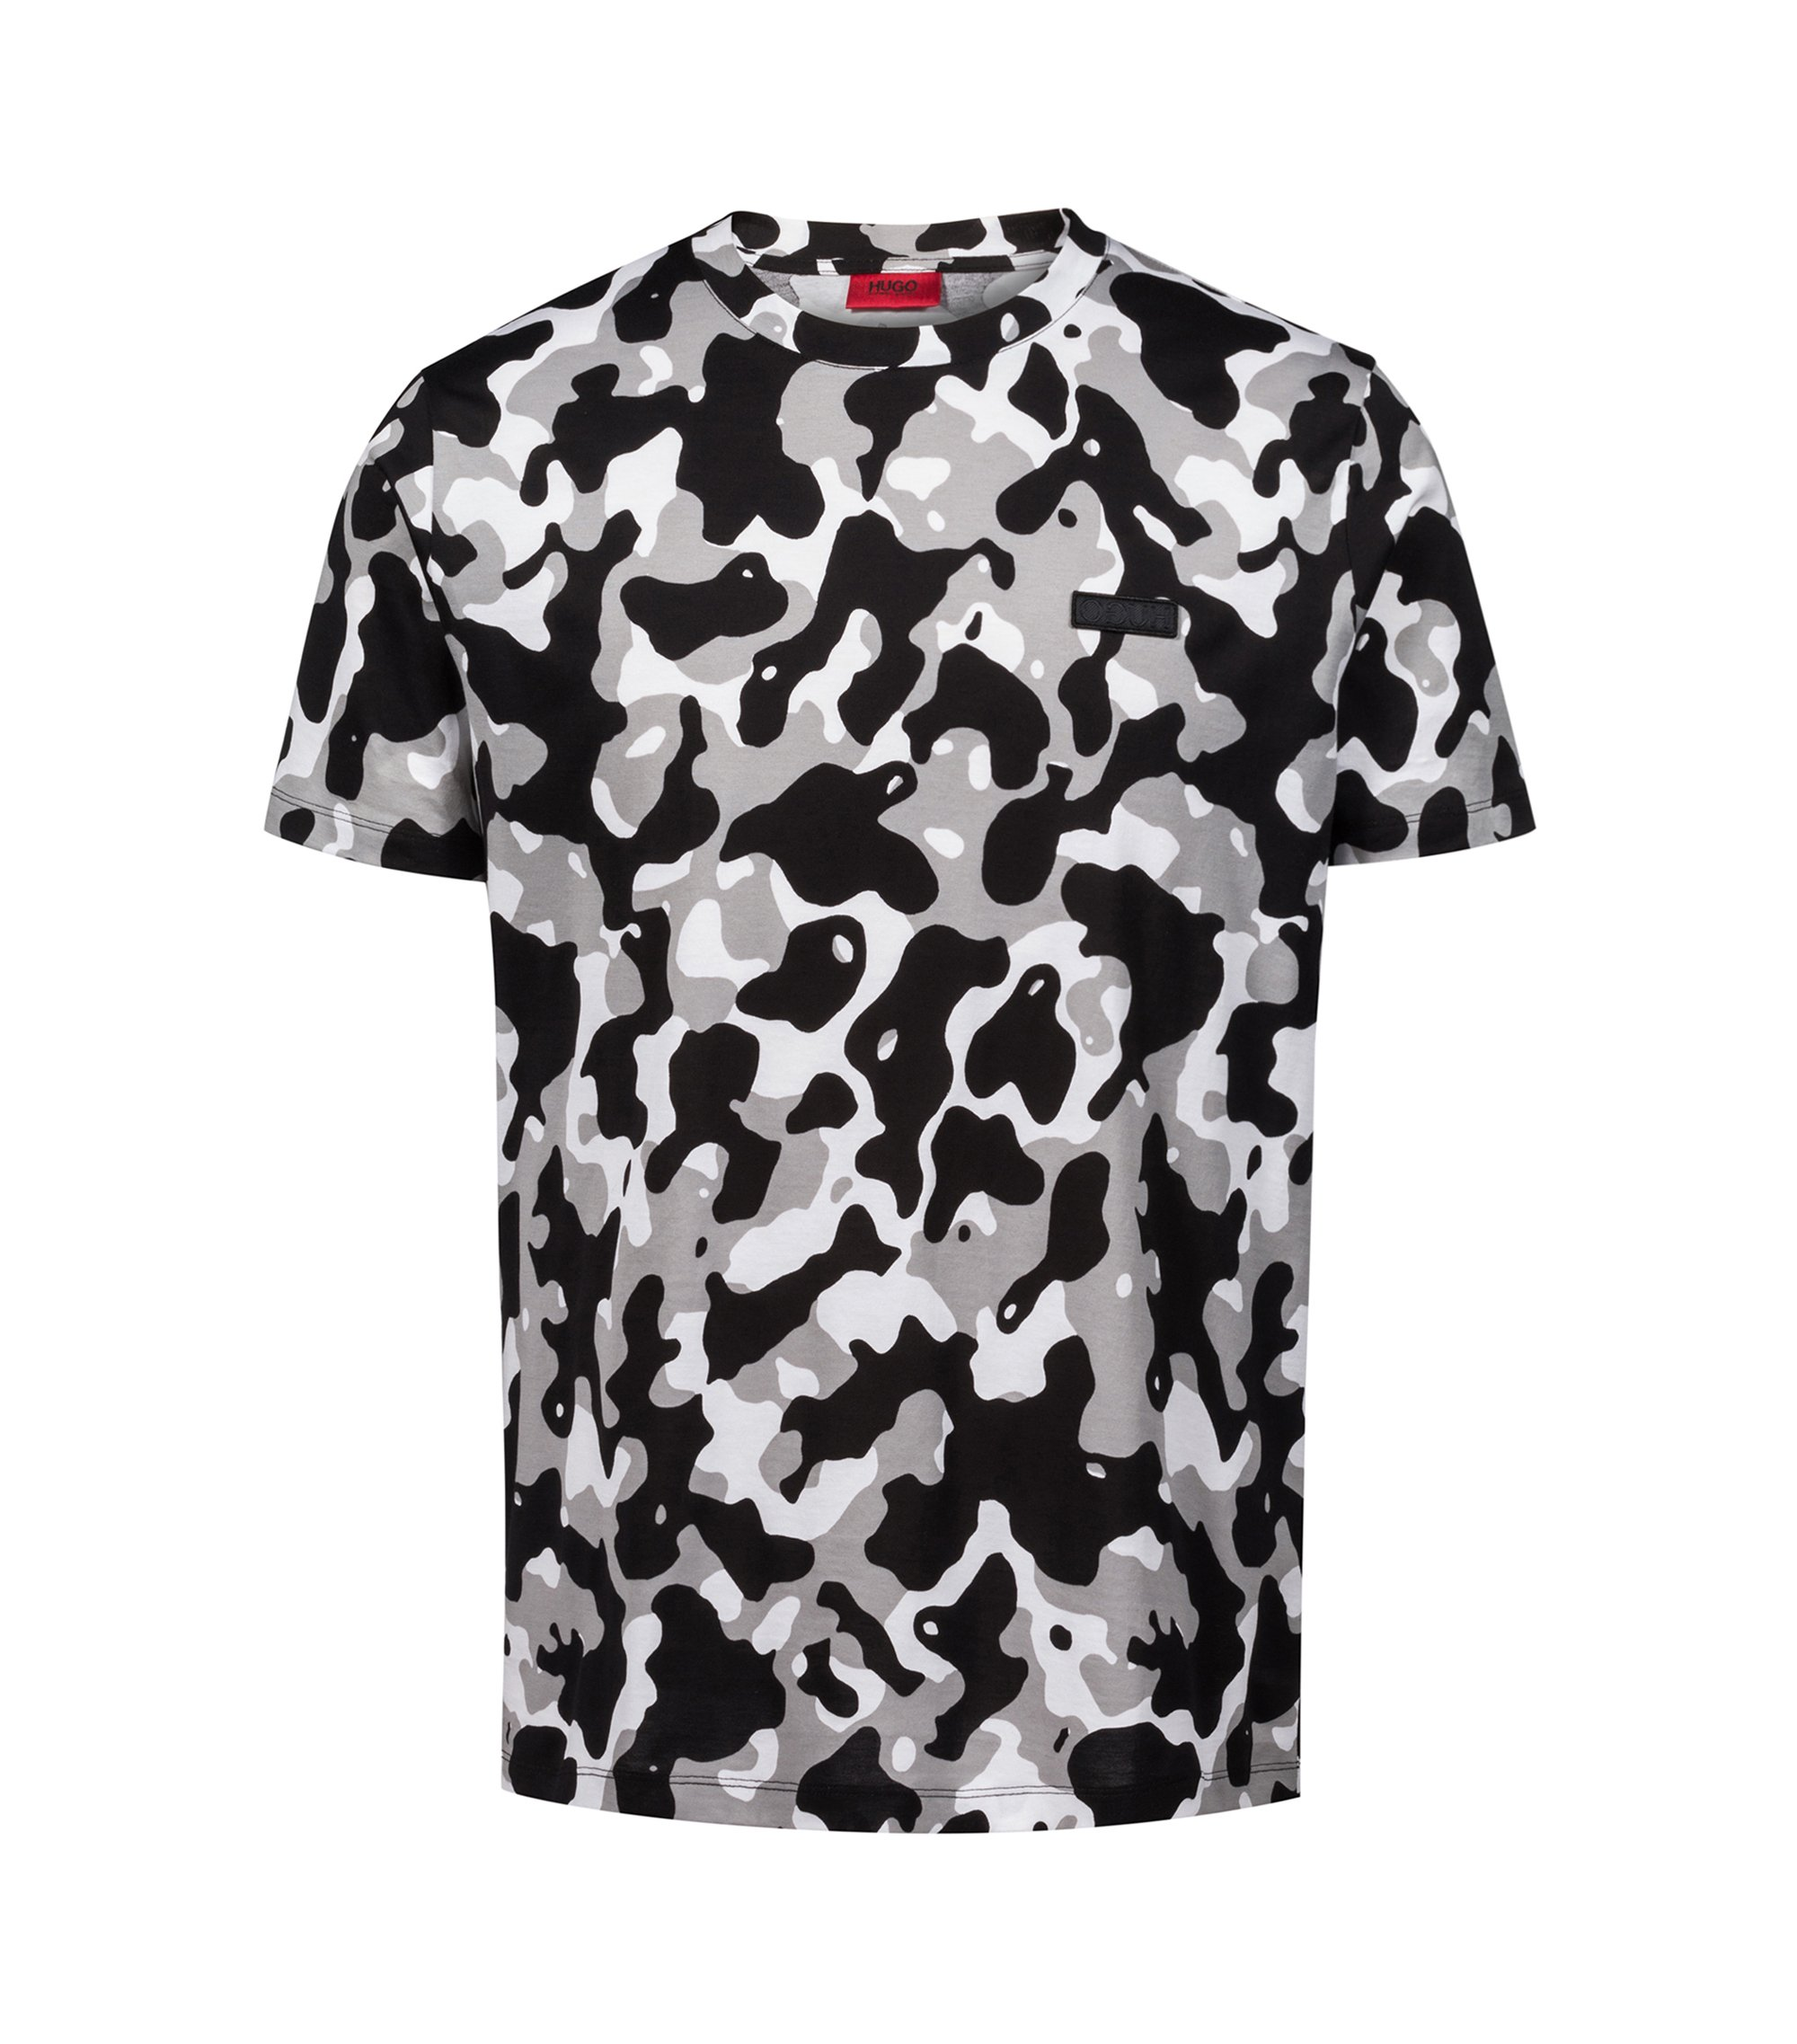 Relaxed-fit T-shirt in pure cotton with camouflage print, Patterned